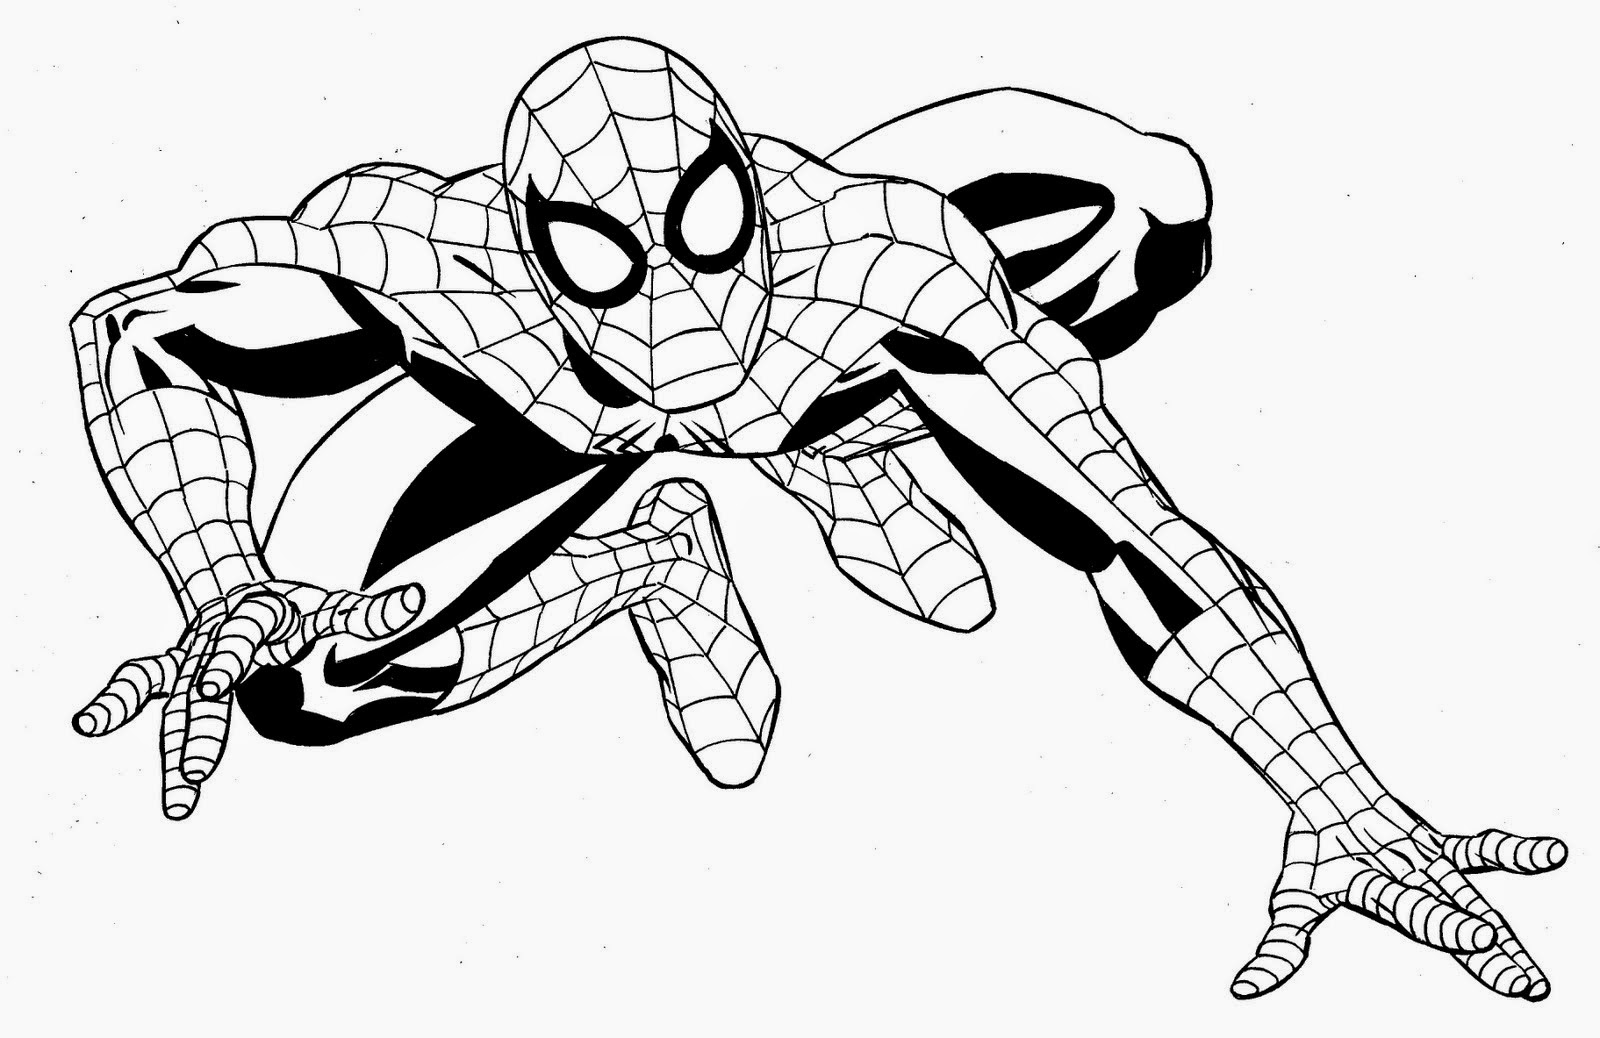 Ausmalbilder Marvel Superhelden: Coloring Pages: Superhero Coloring Pages Free And Printable